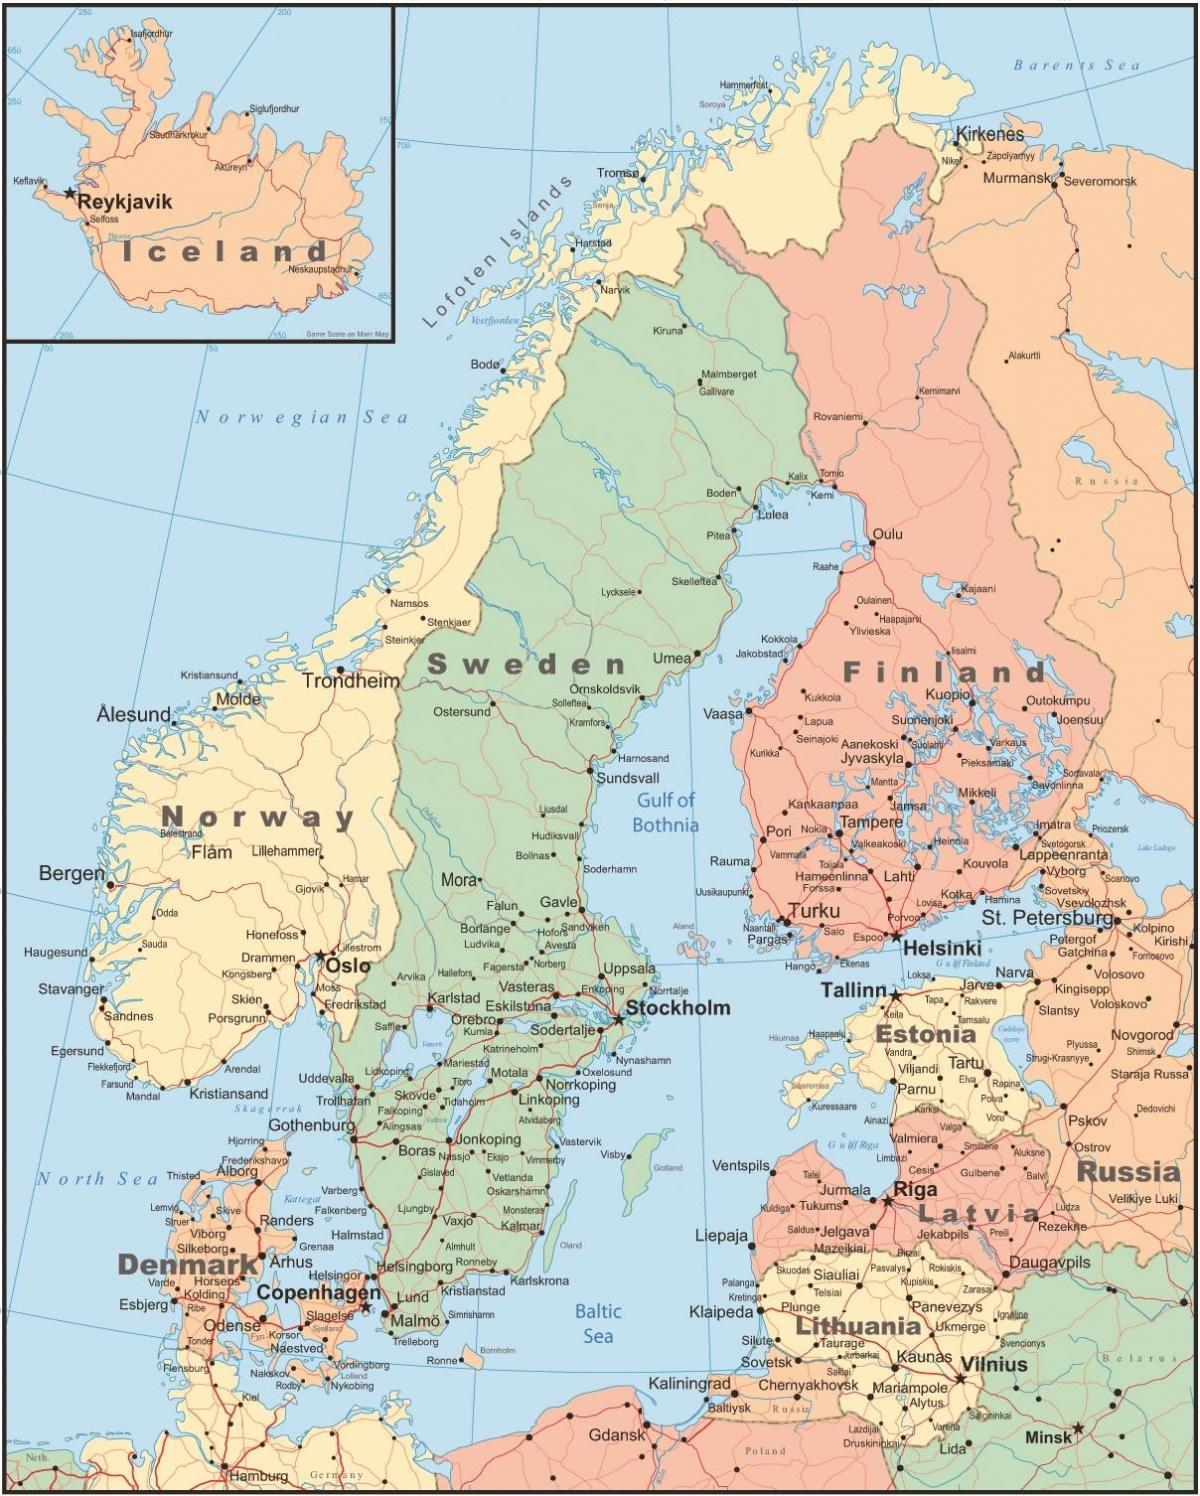 Map of Finland and surrounding countries